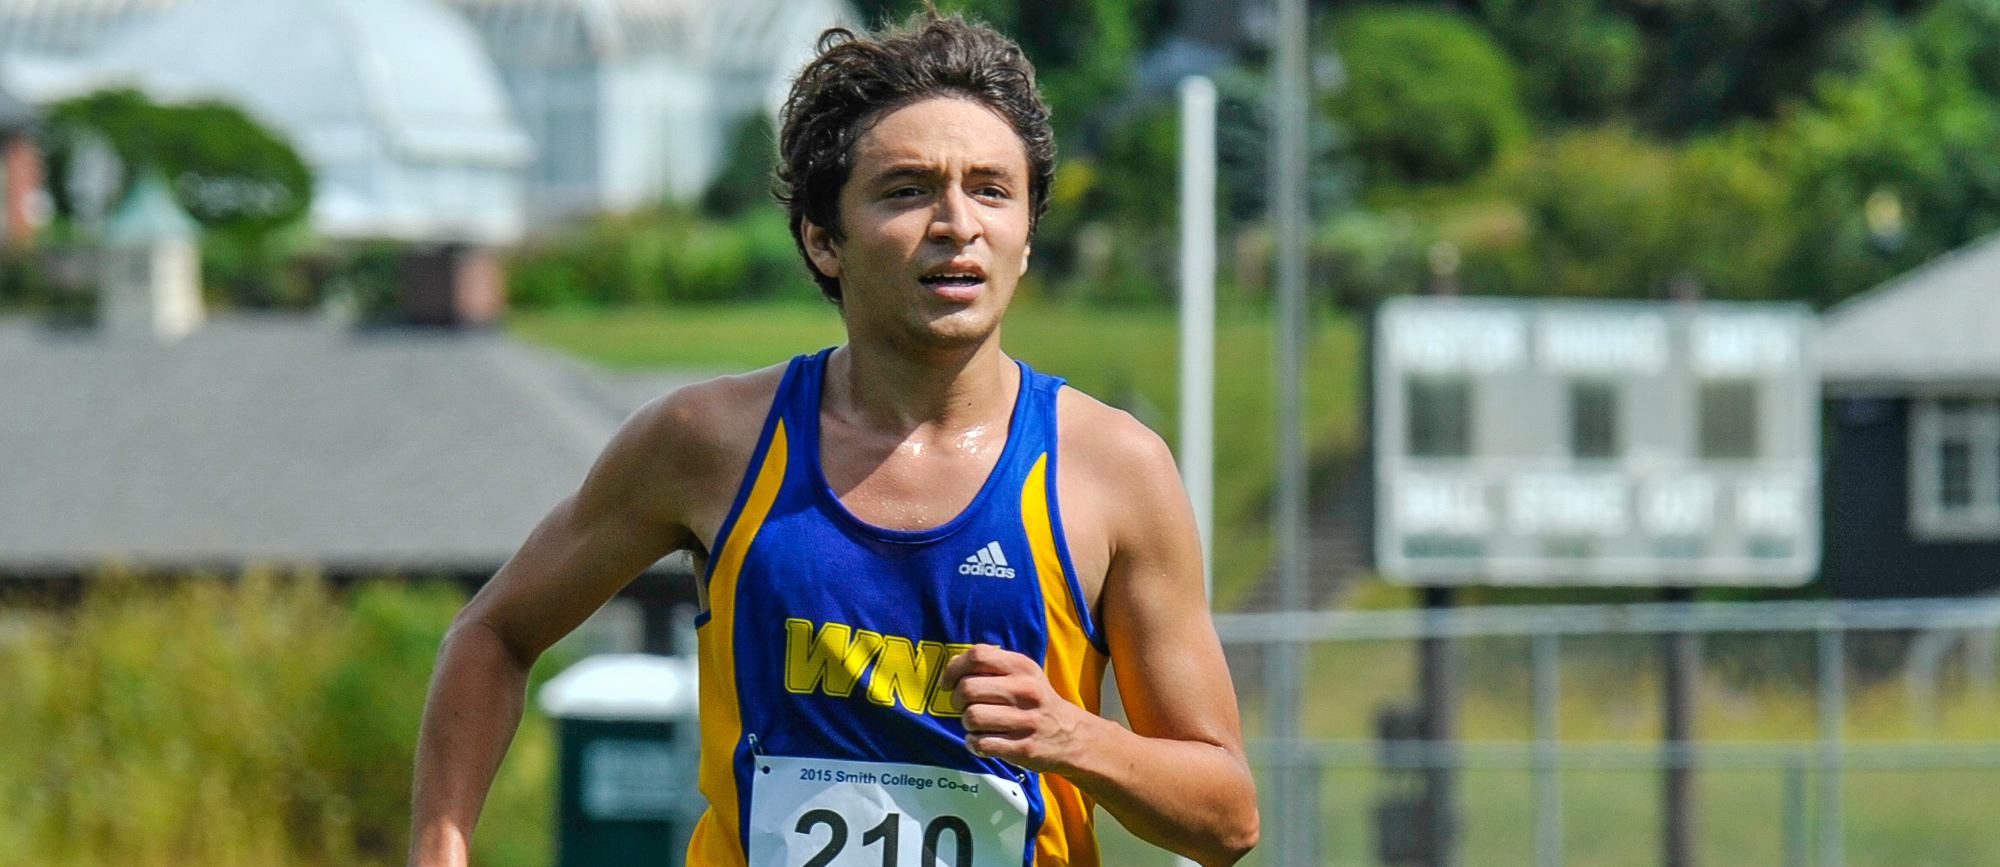 Western New England Runs to Ninth-Place Finish at Season-Opening Roger Williams Invitational